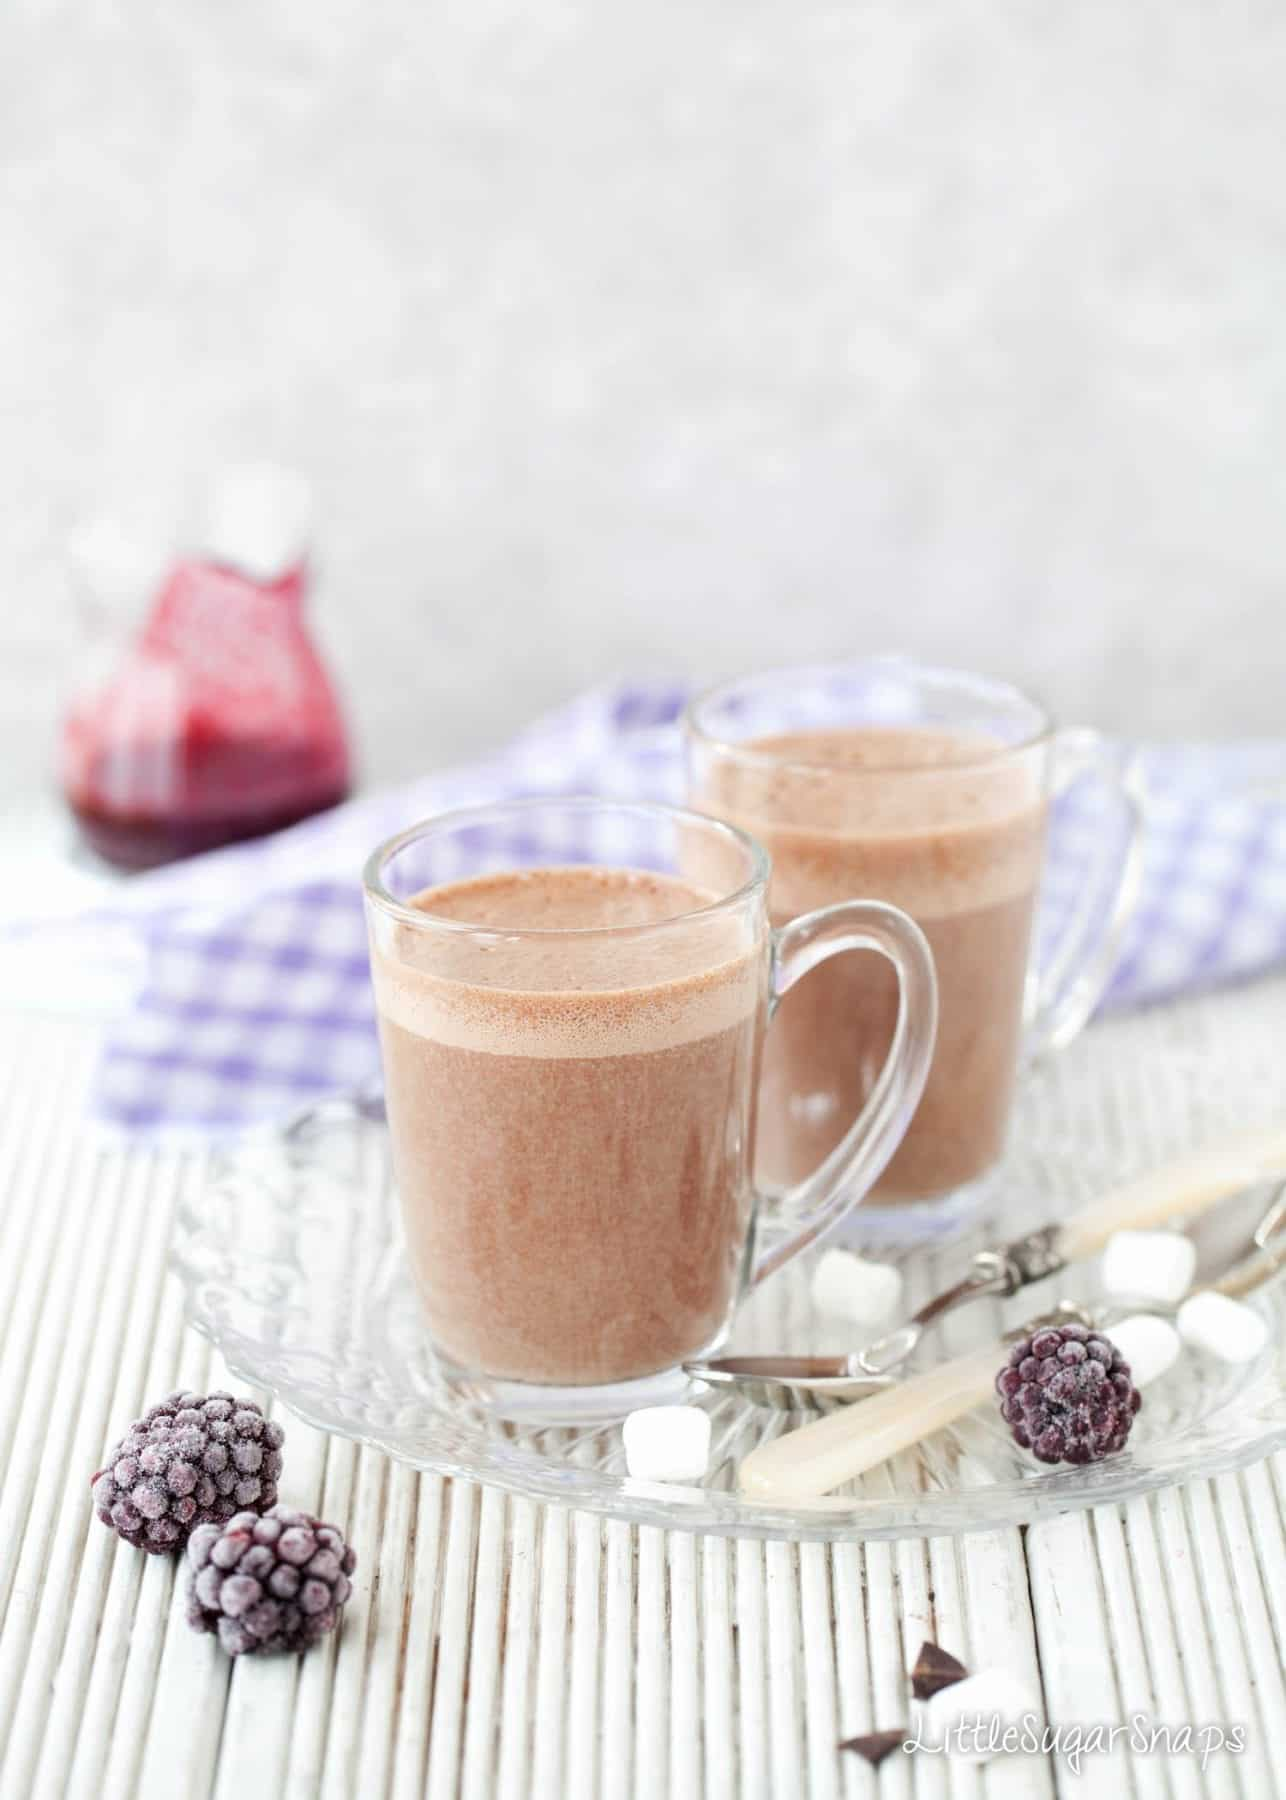 Glass mugs of Hot chocolate drink with a frothy top.